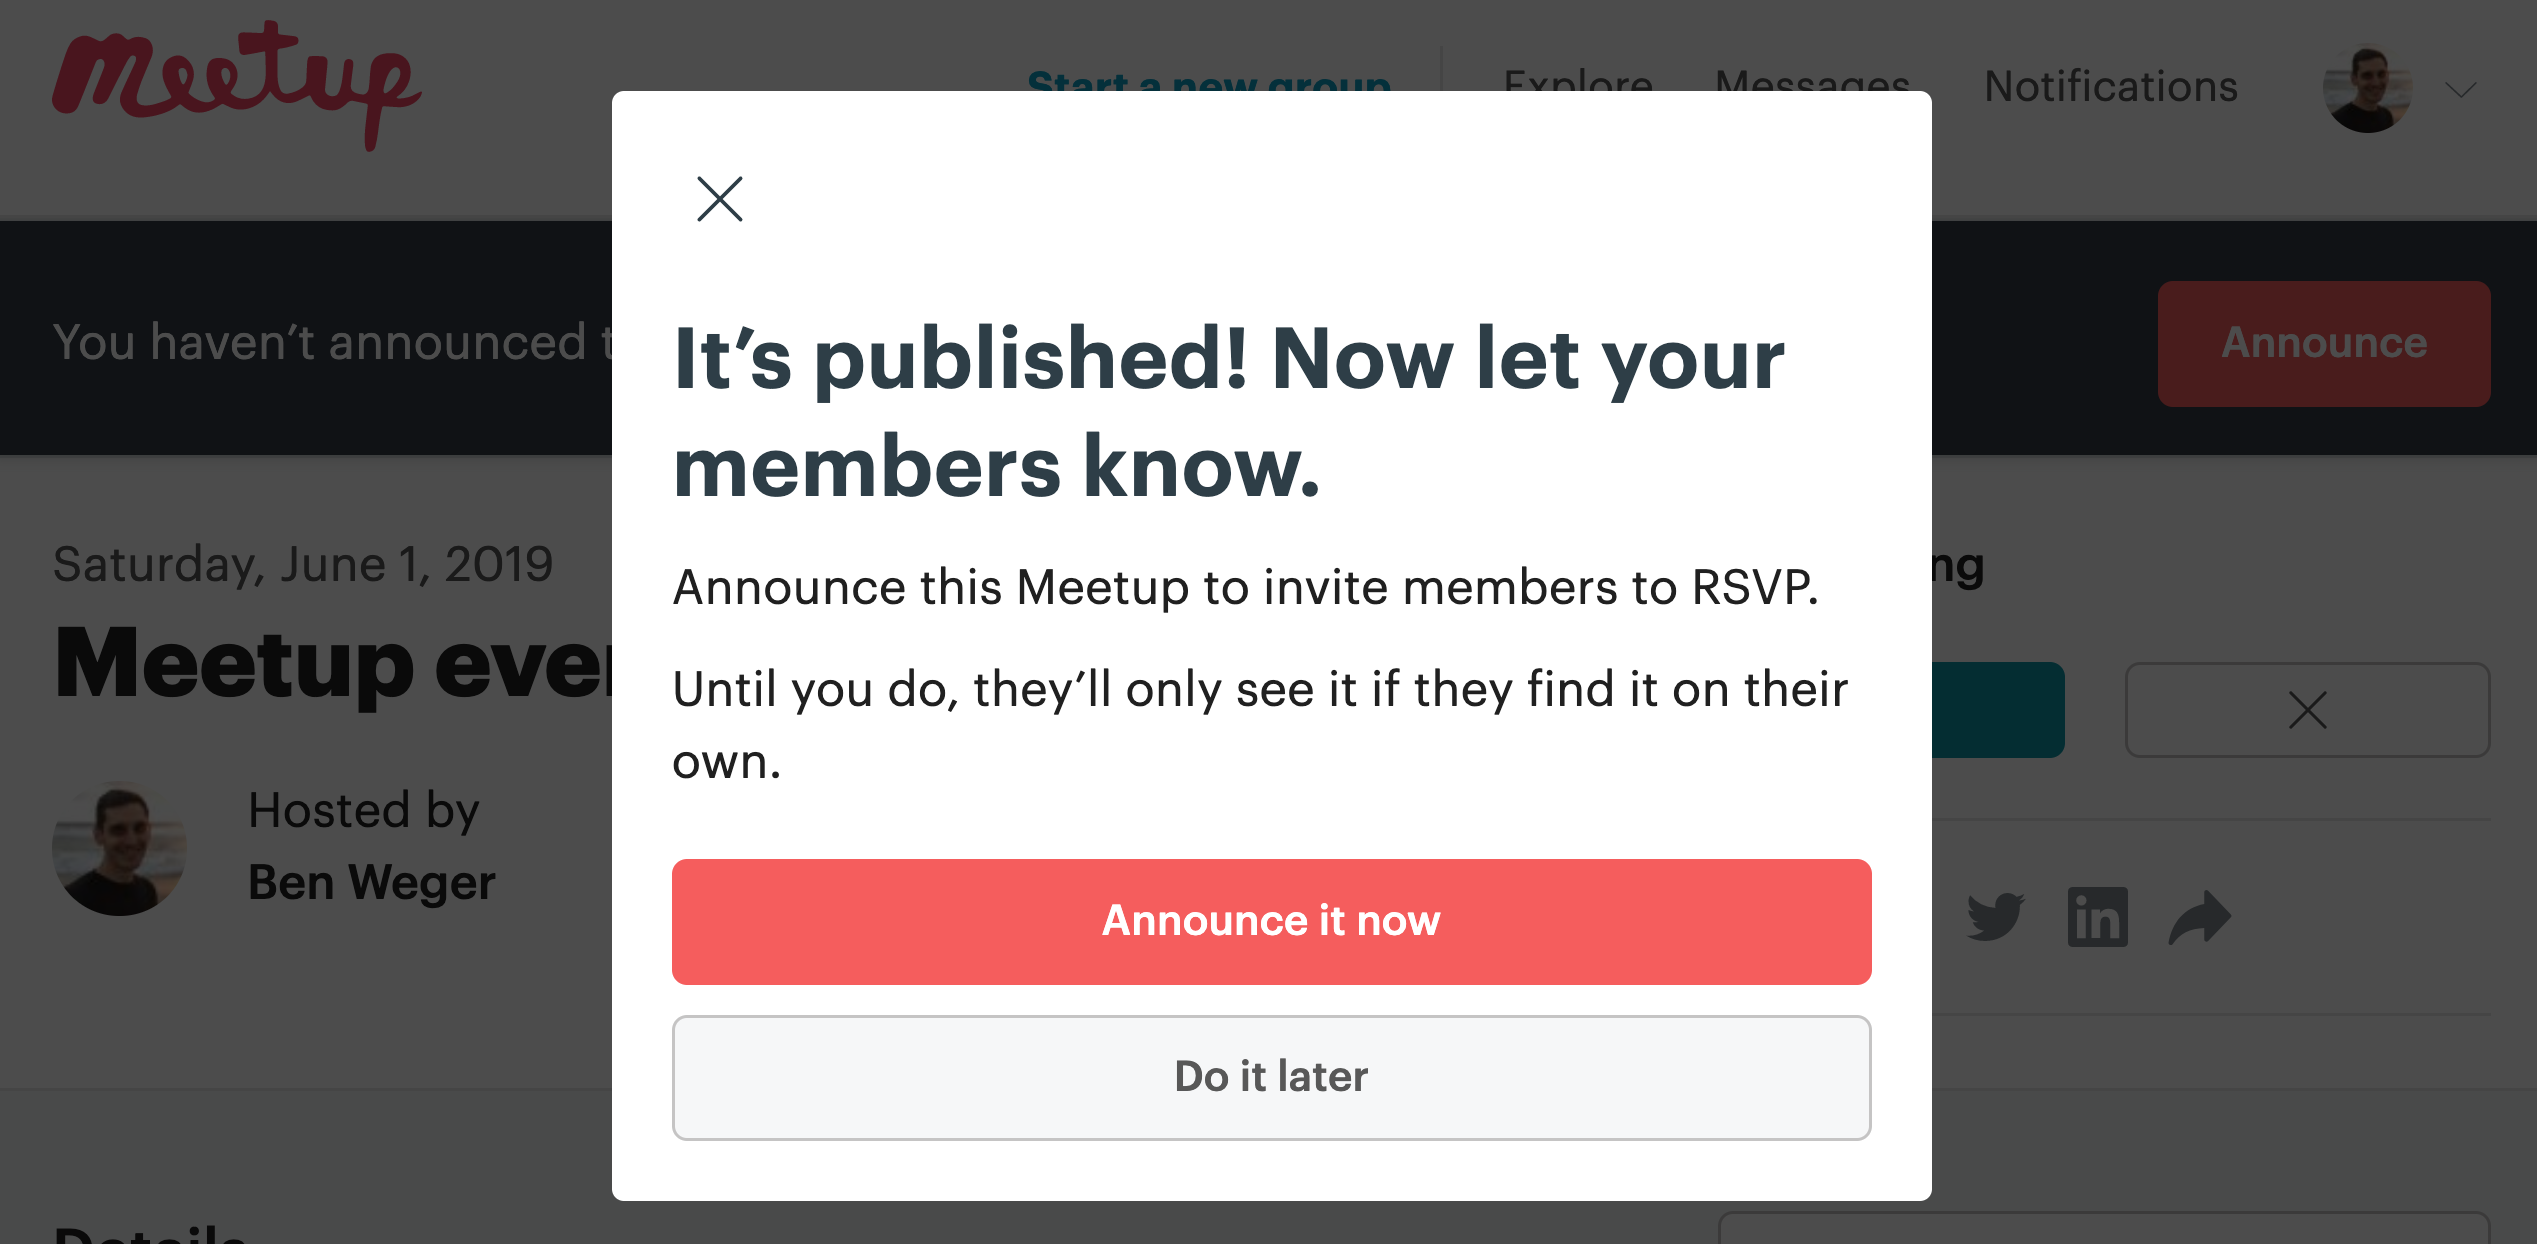 Announcing-event_Meetup.png